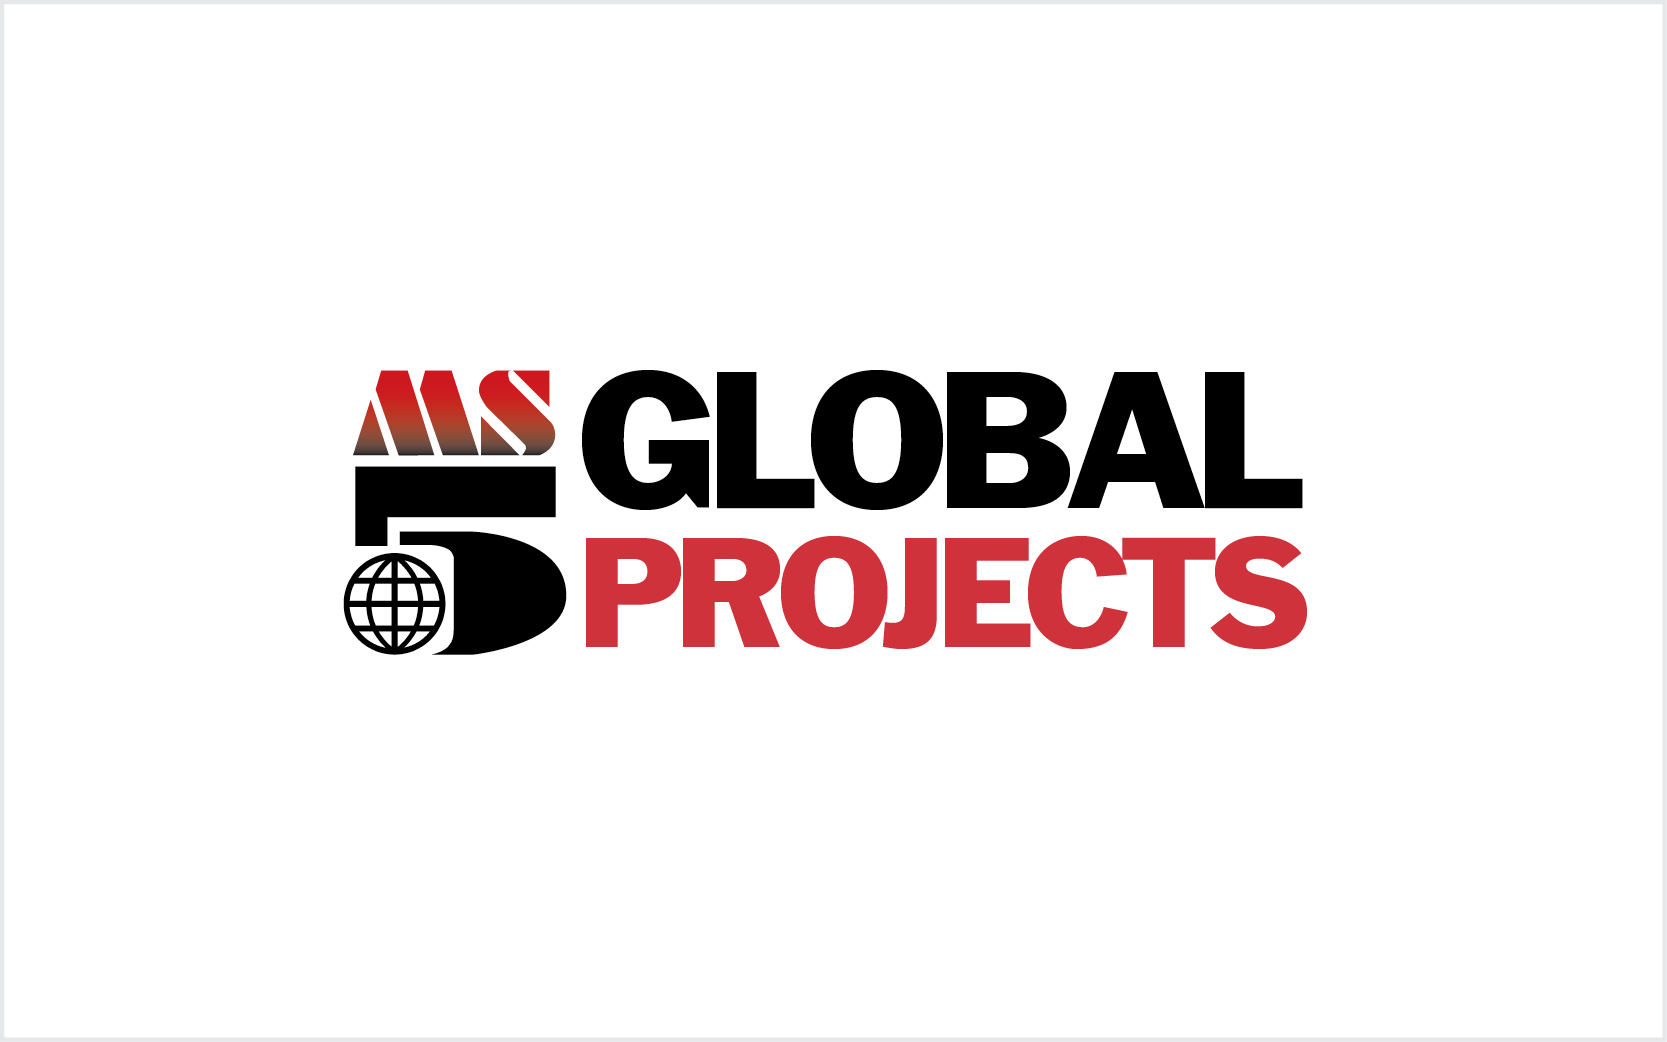 MS5 Global Projects Logo